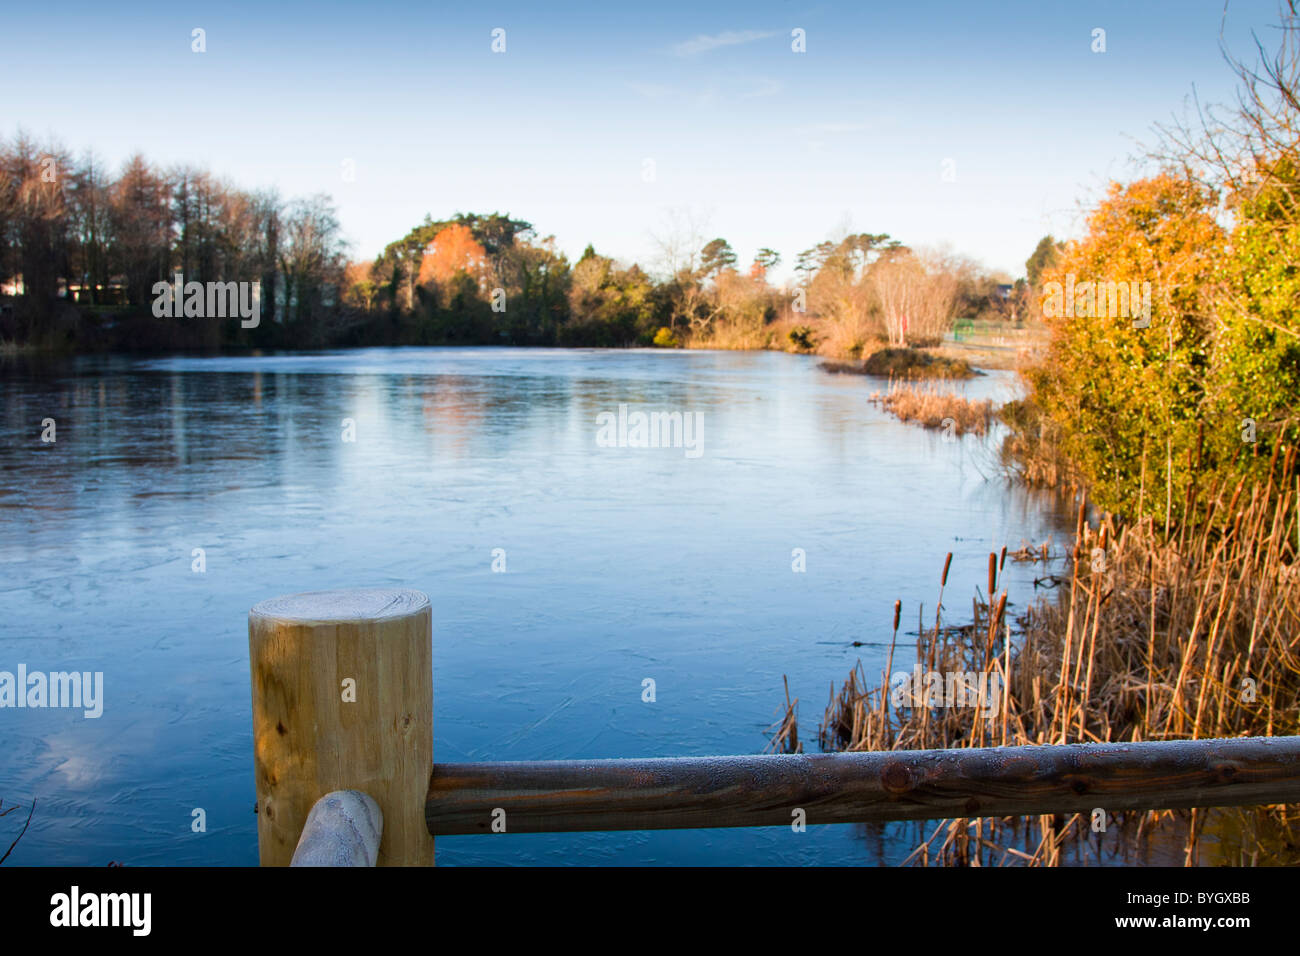 Frosty fencing with lake in background.Castle Espie, Co. Down, Northern Ireland. - Stock Image